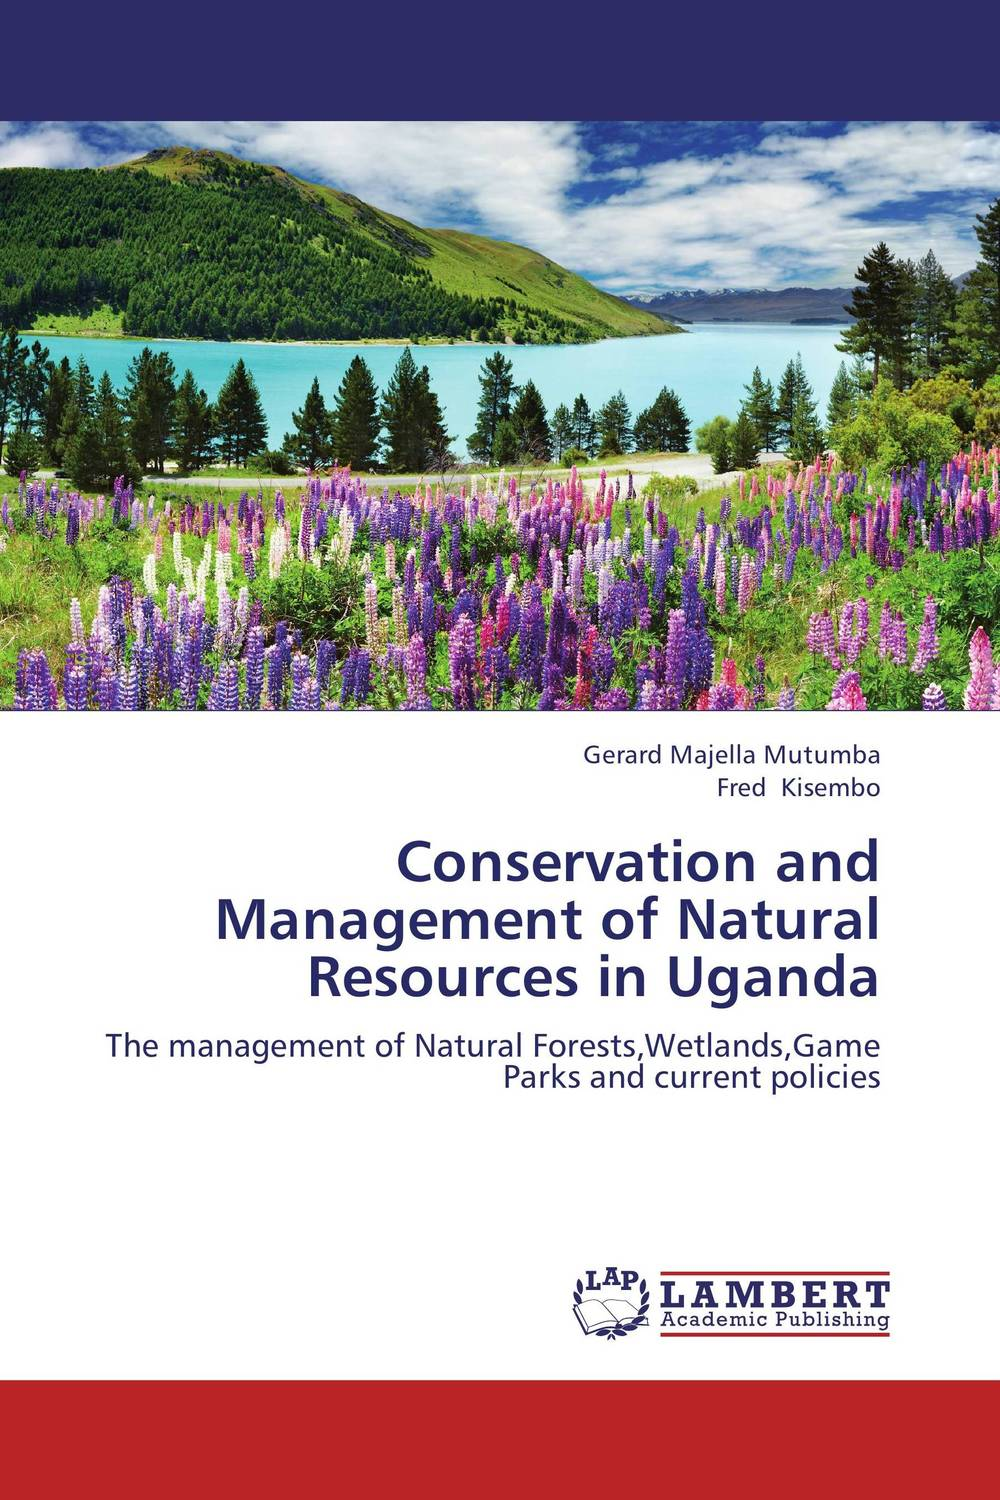 Conservation and Management of Natural Resources in Uganda portney current issues in u s natural resource policy